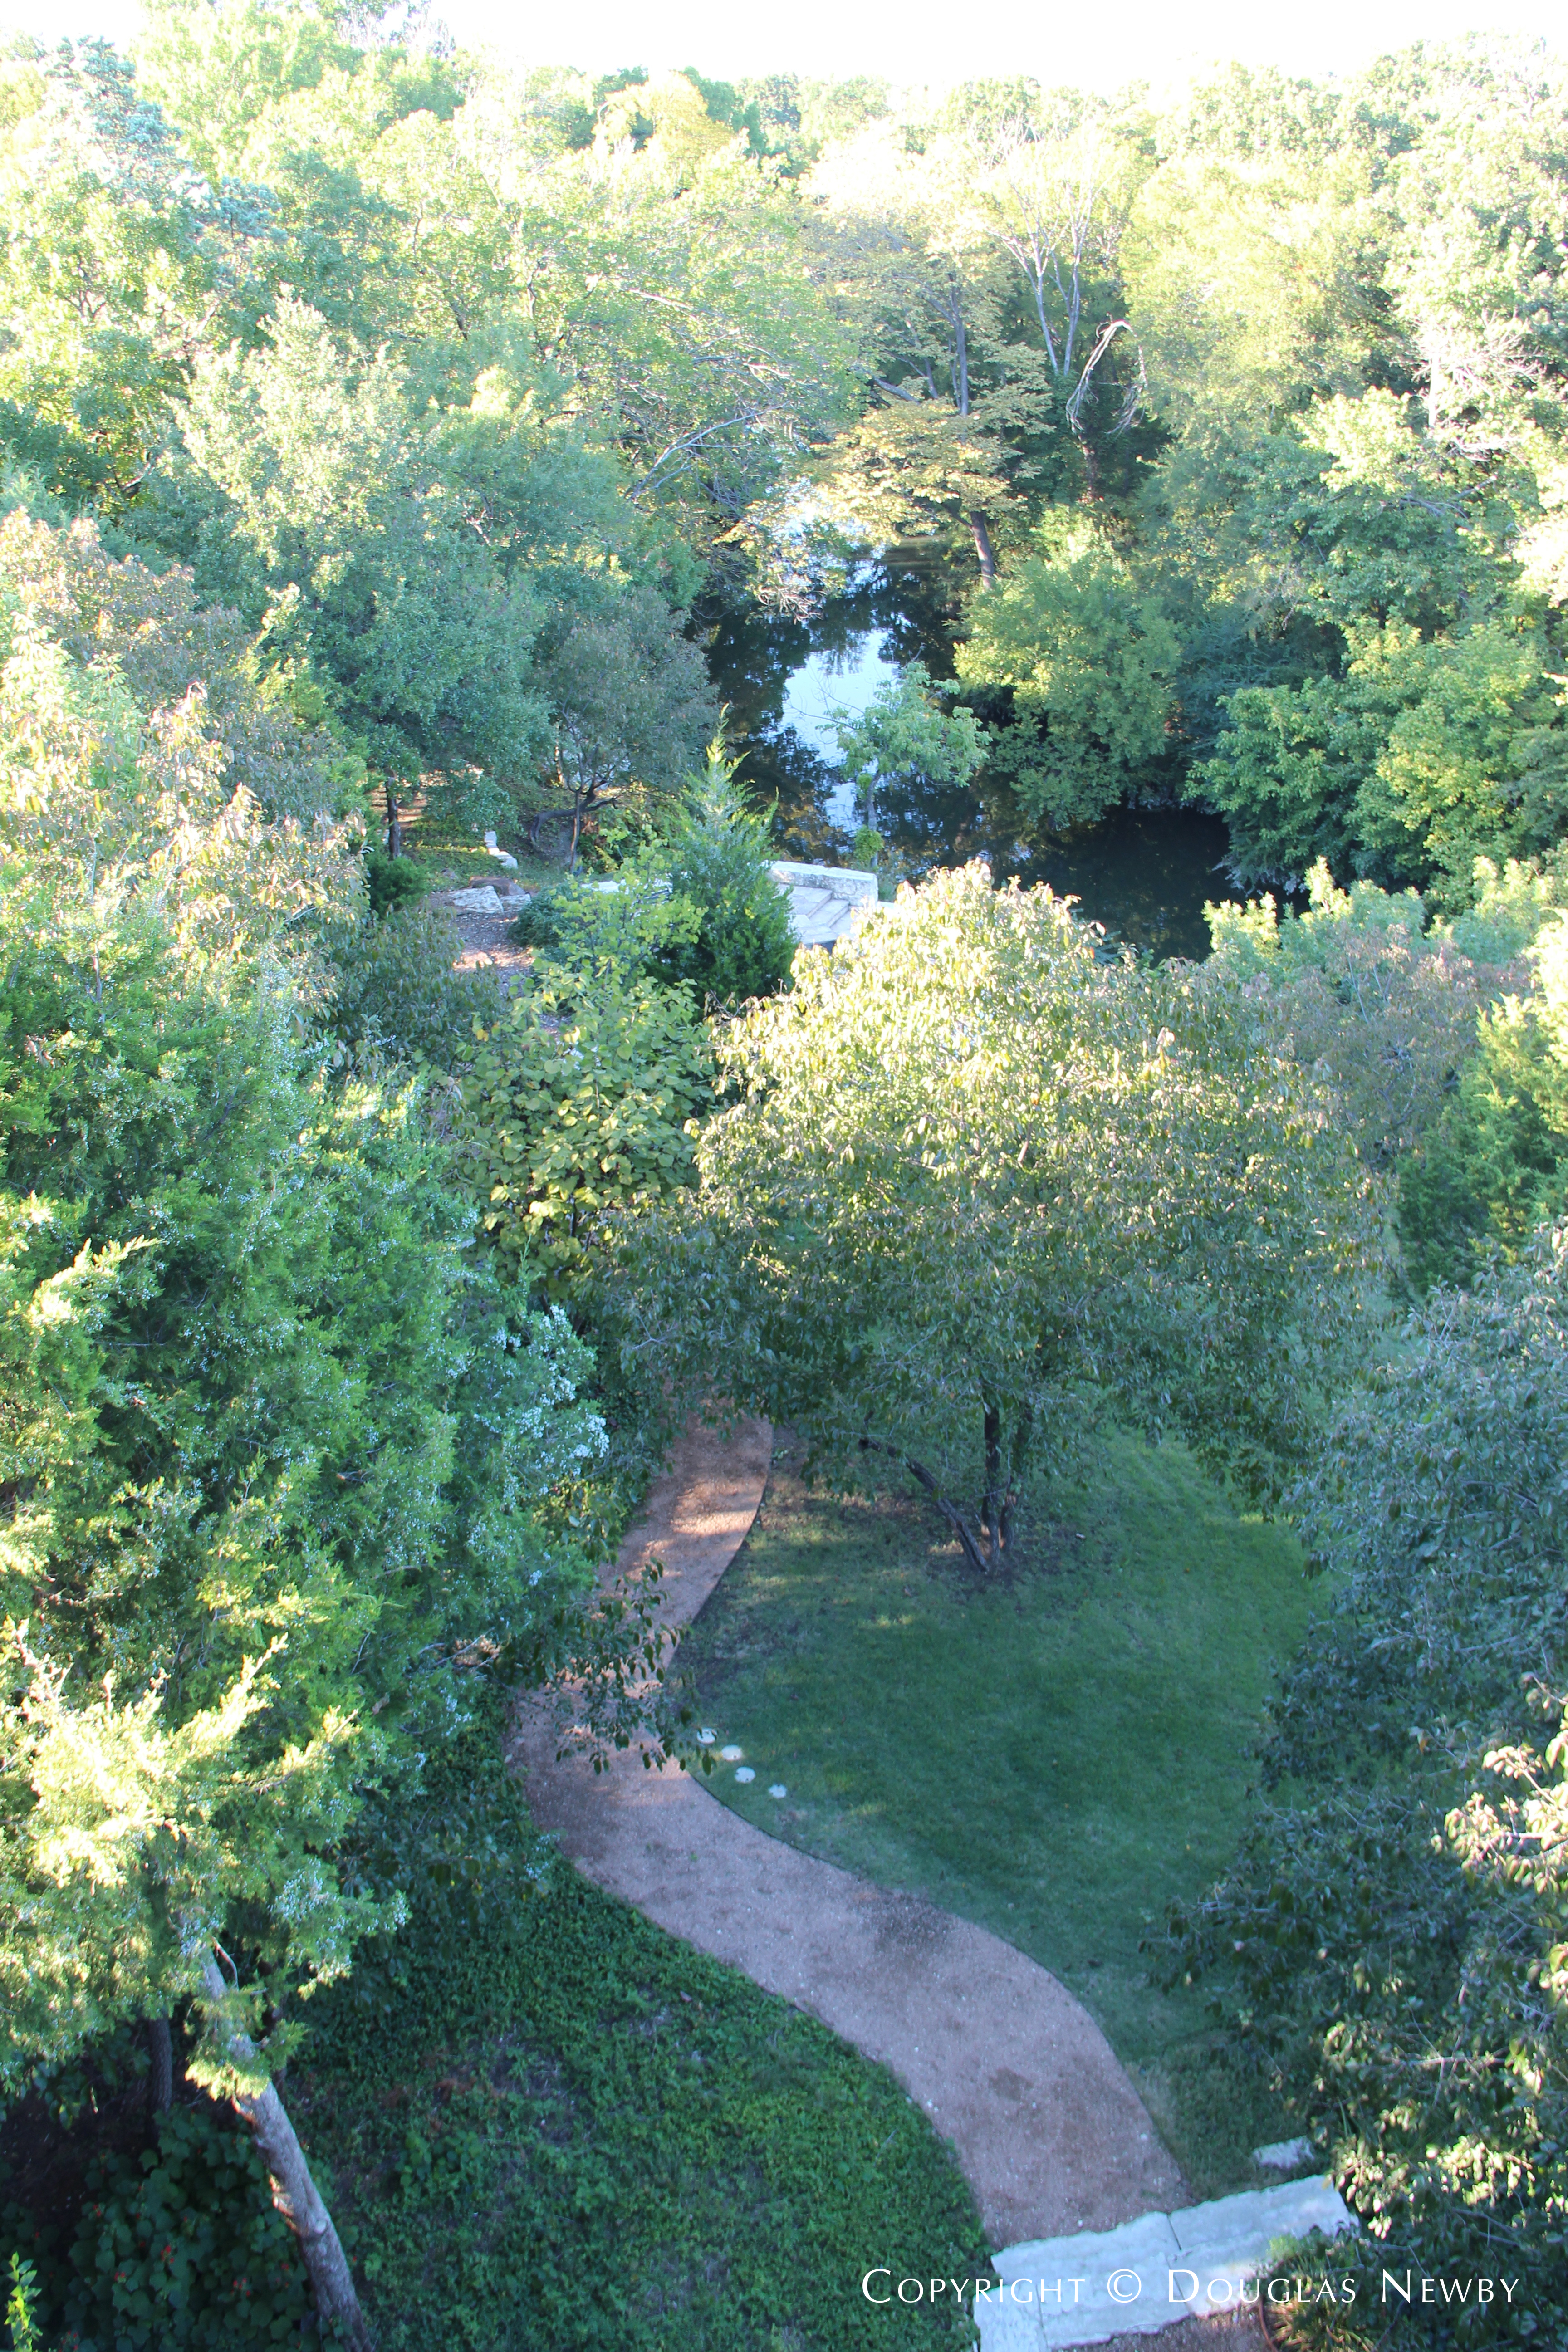 View From Glen Abbey Home Balcony Terrace of One of the Paths to White Rock Creek